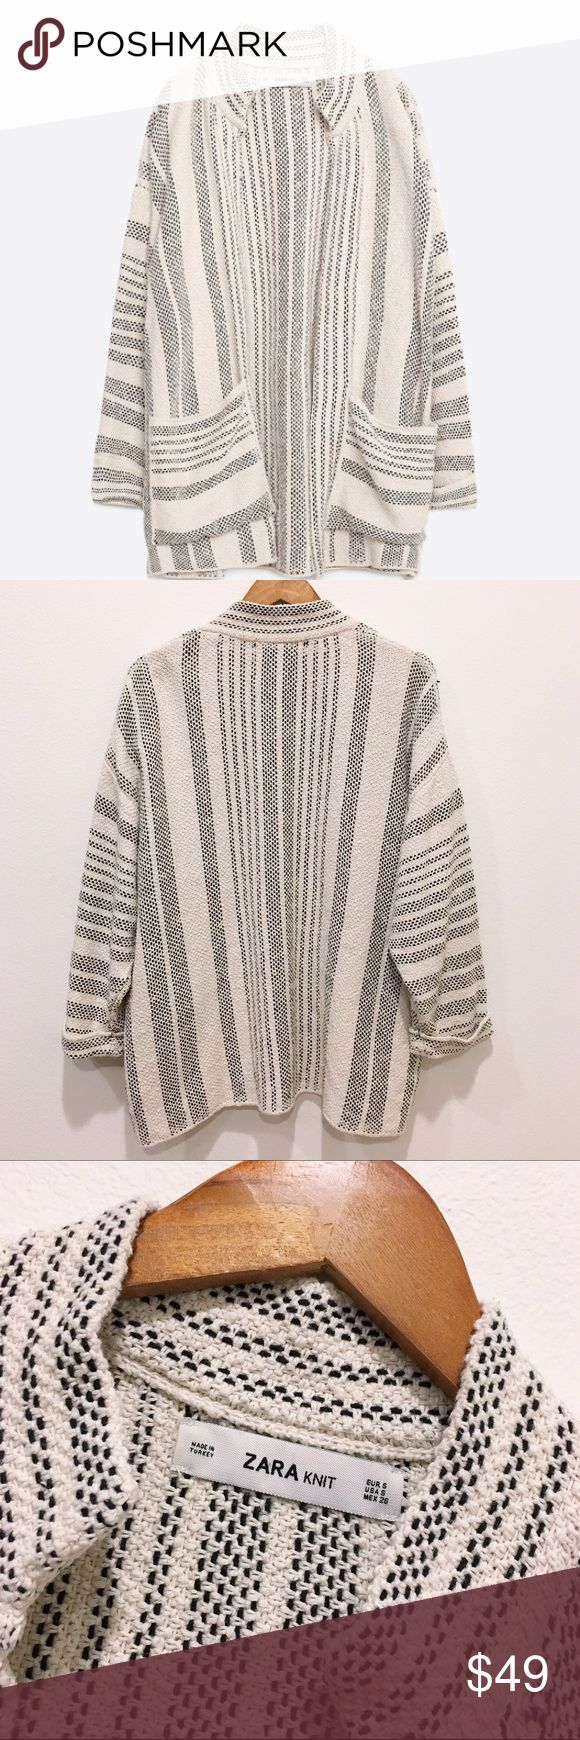 Zara chunky Oversized CardiganSz Small This is one of the most awesome cardigans I've seen to date! I just love the stitching that weaves through the Knit! It's super soft and comfy! Just in time for the cooler season! No closure Cardigan! 94% Cotton 6% Polyester Happy Poshing Ladies!💁🏾✨ Zara Sweaters Cardigans